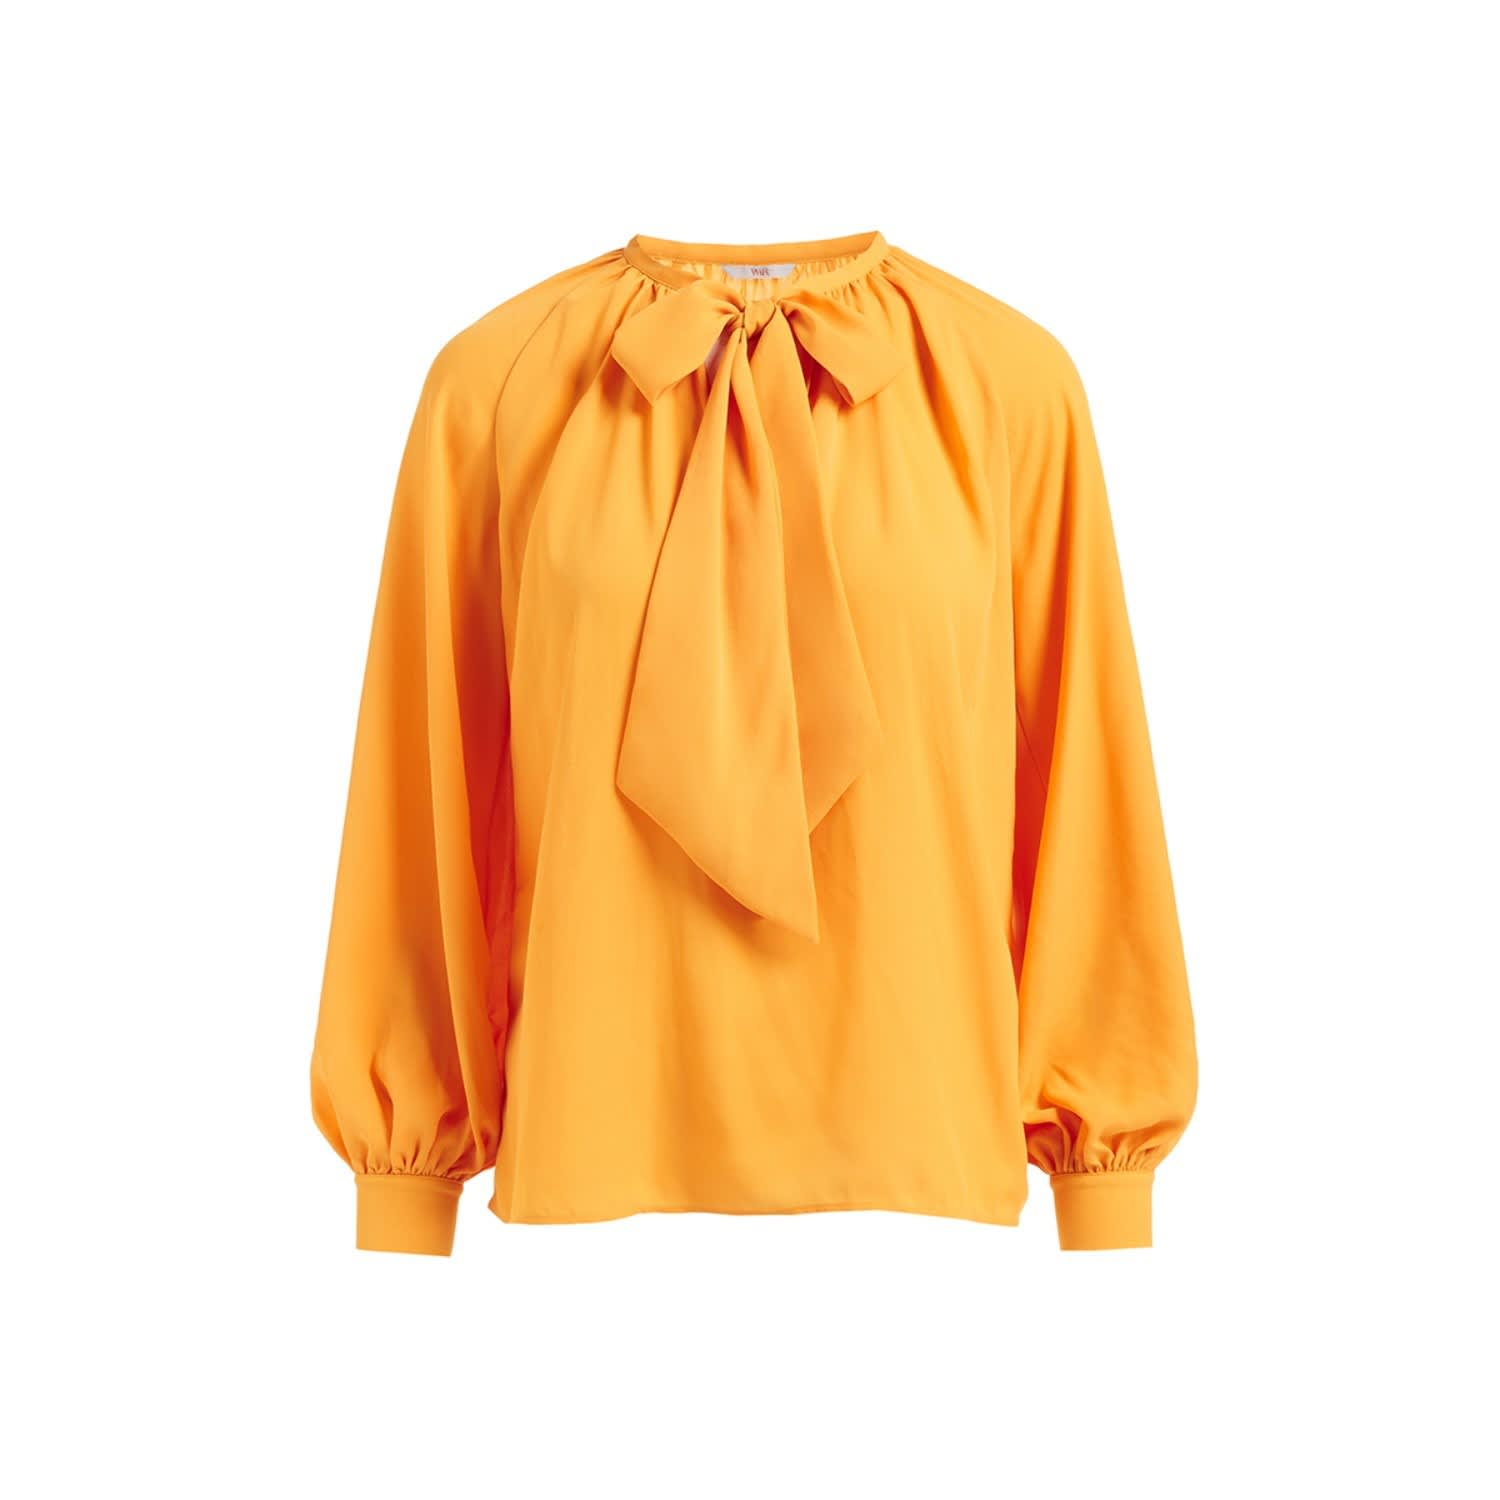 8dbca5e72baed Delysia Yellow Bow Blouse image